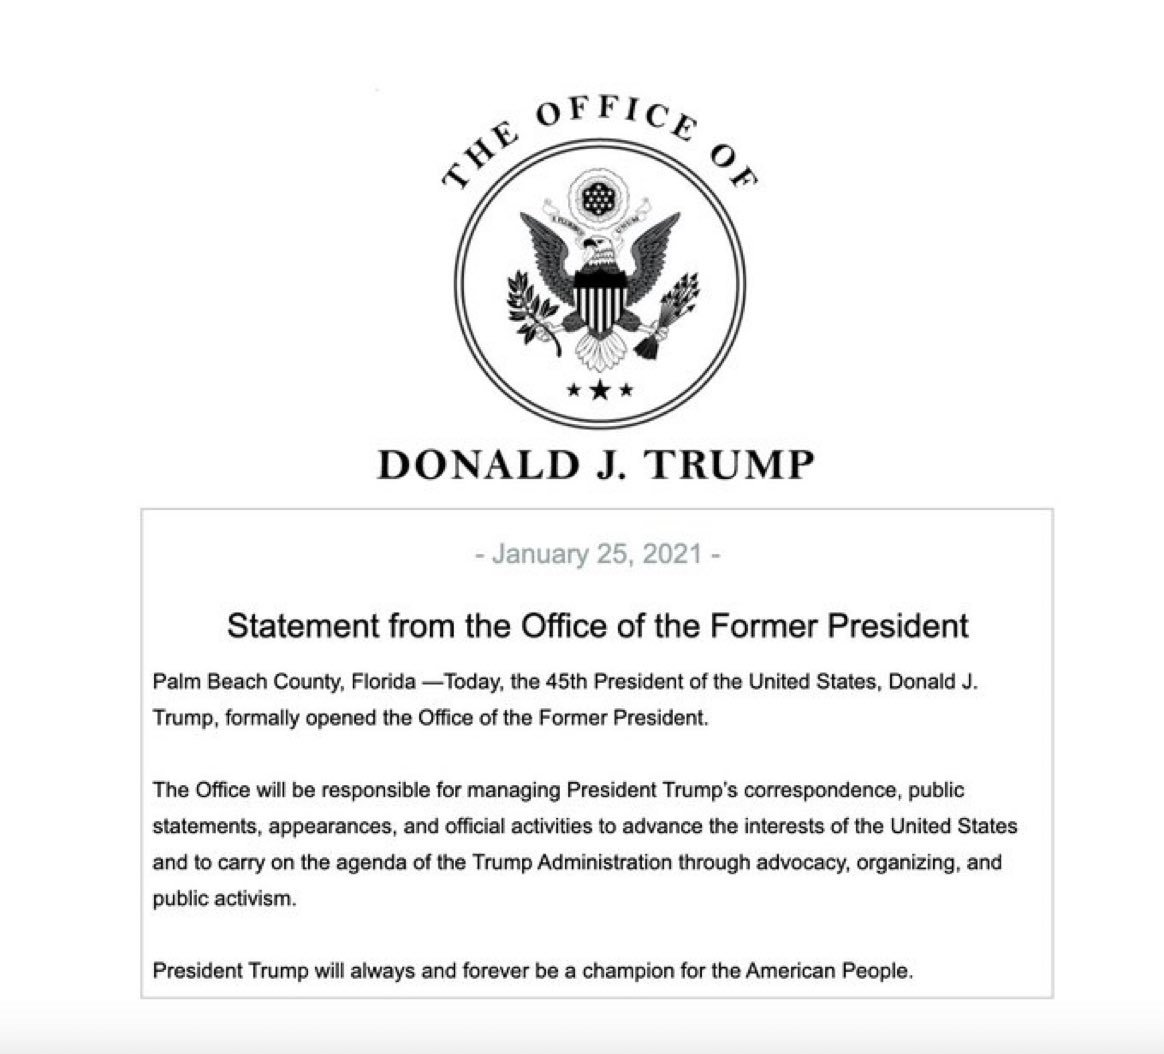 Statement from the Office of the Former President - Jan. 25, 2021